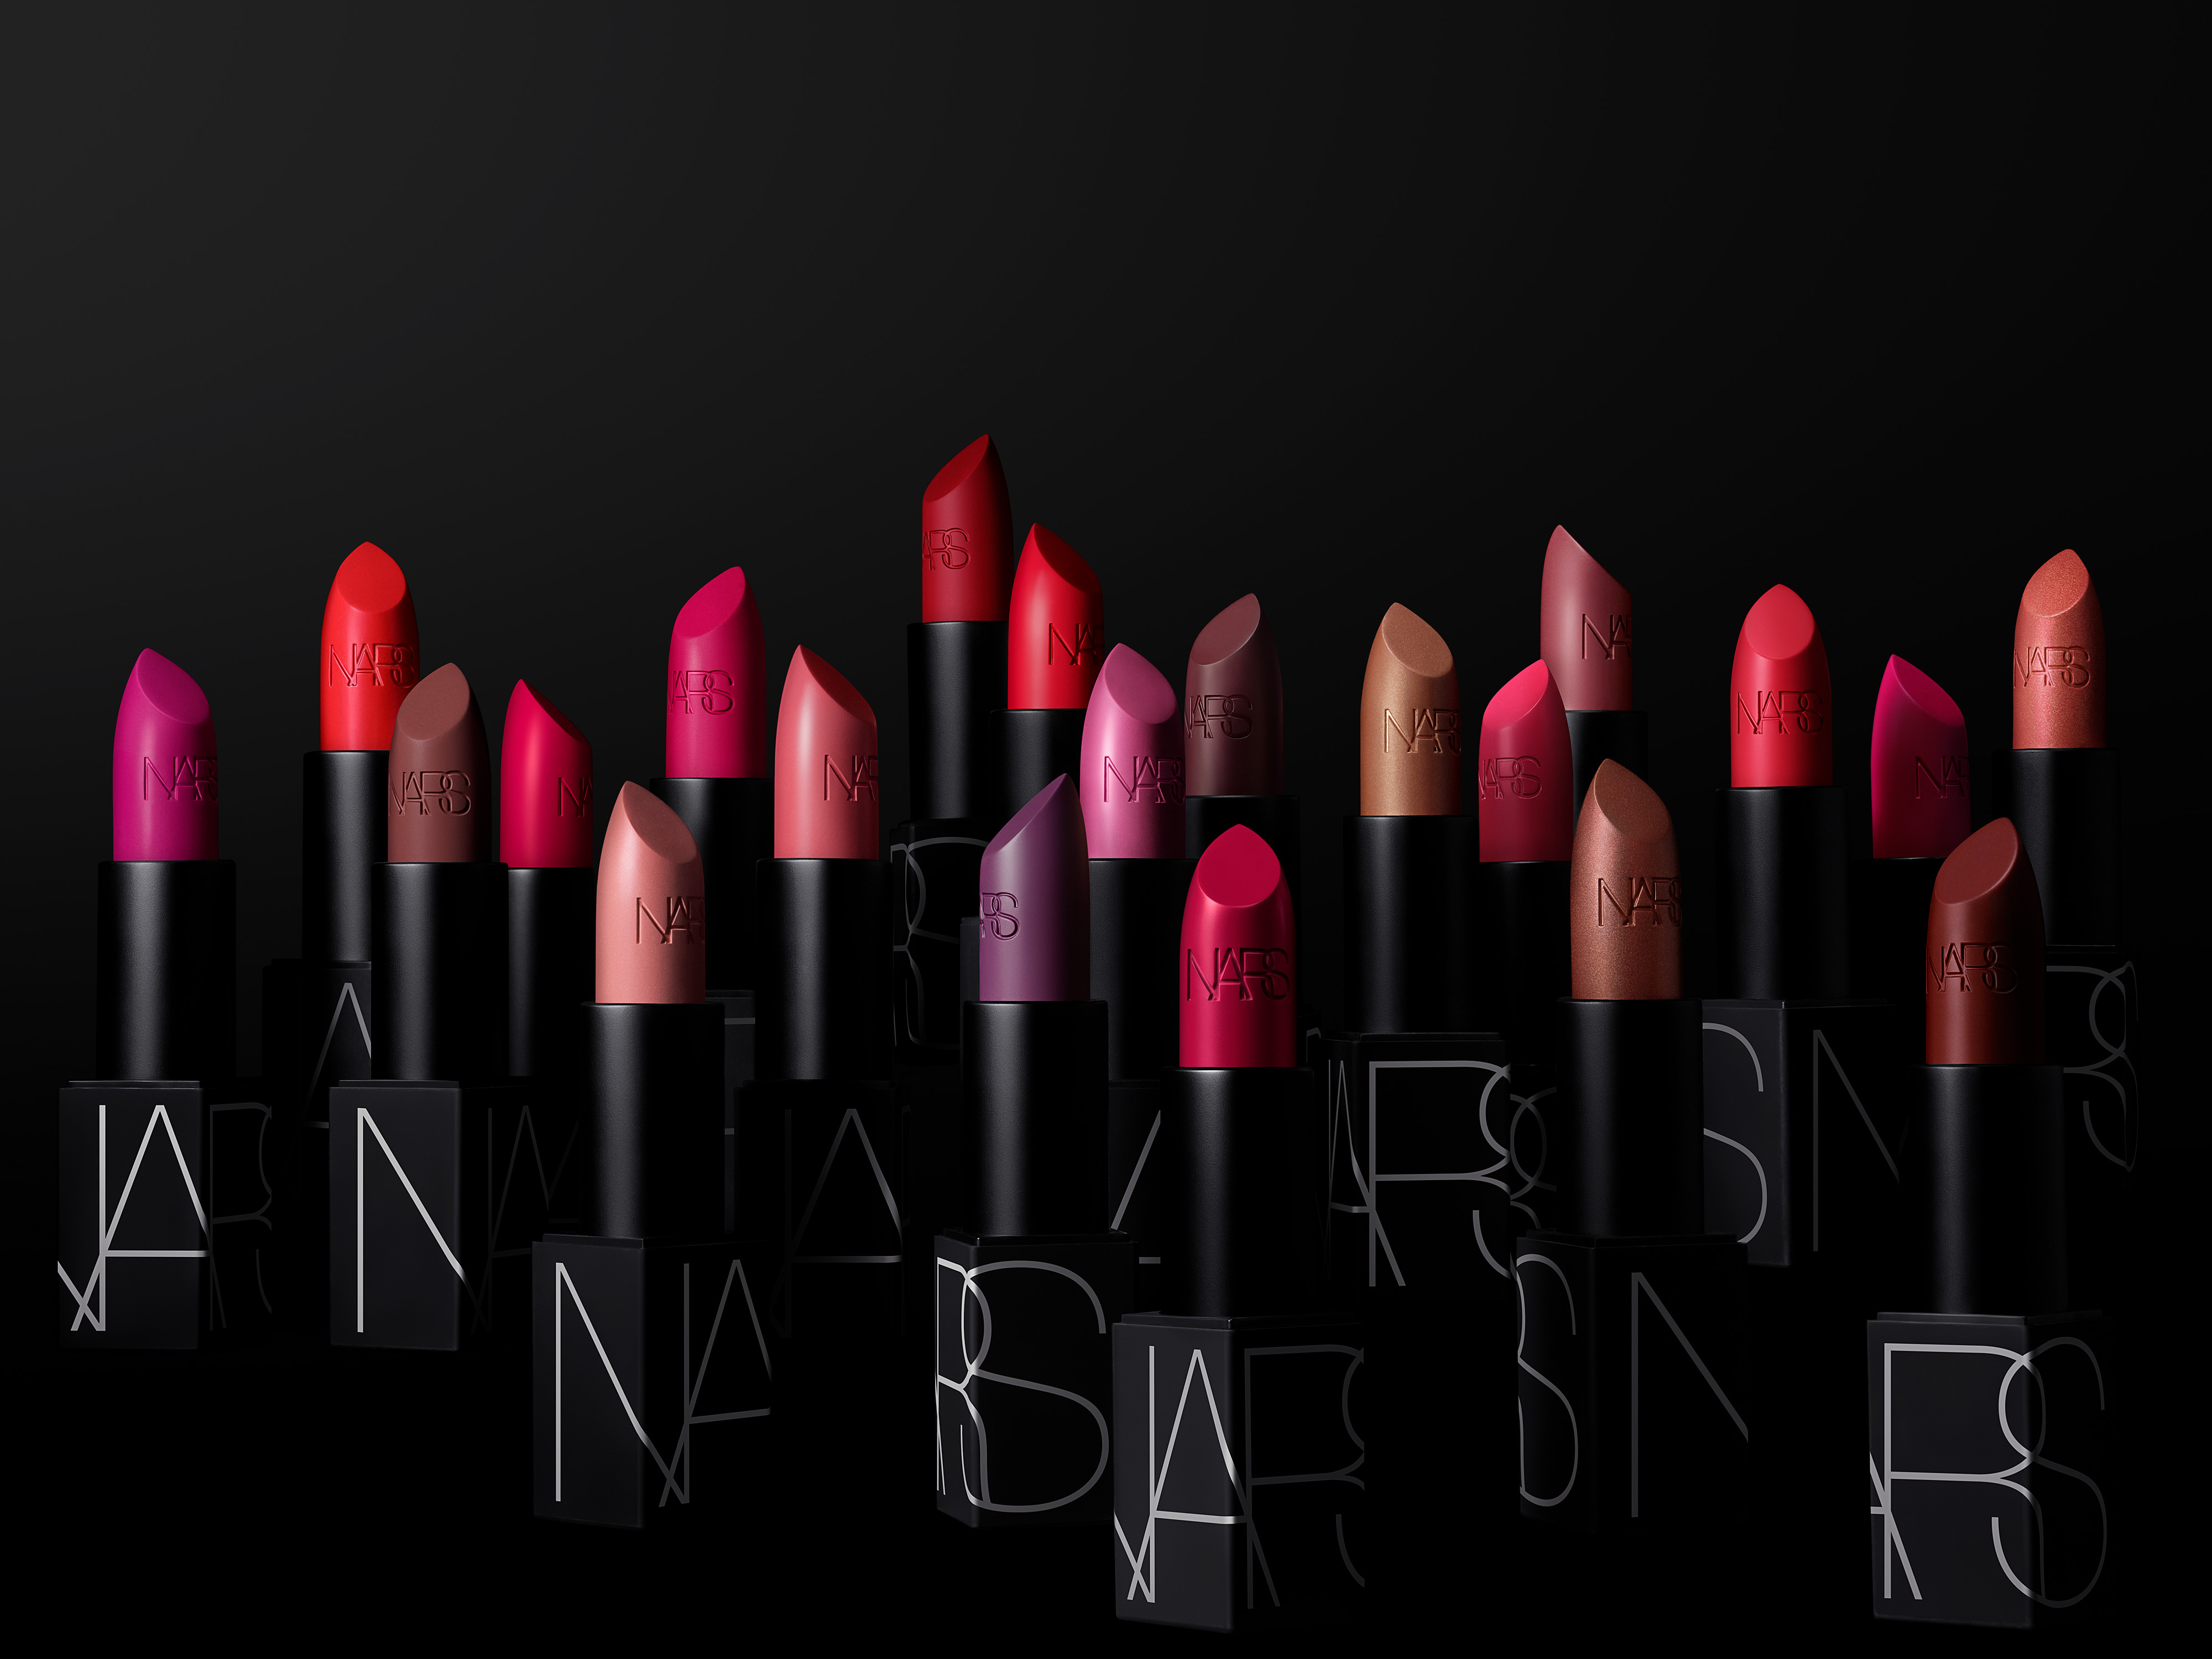 No Rules, Just Lips: the NARS Iconic Lipstick Collection is the sexiest range yet